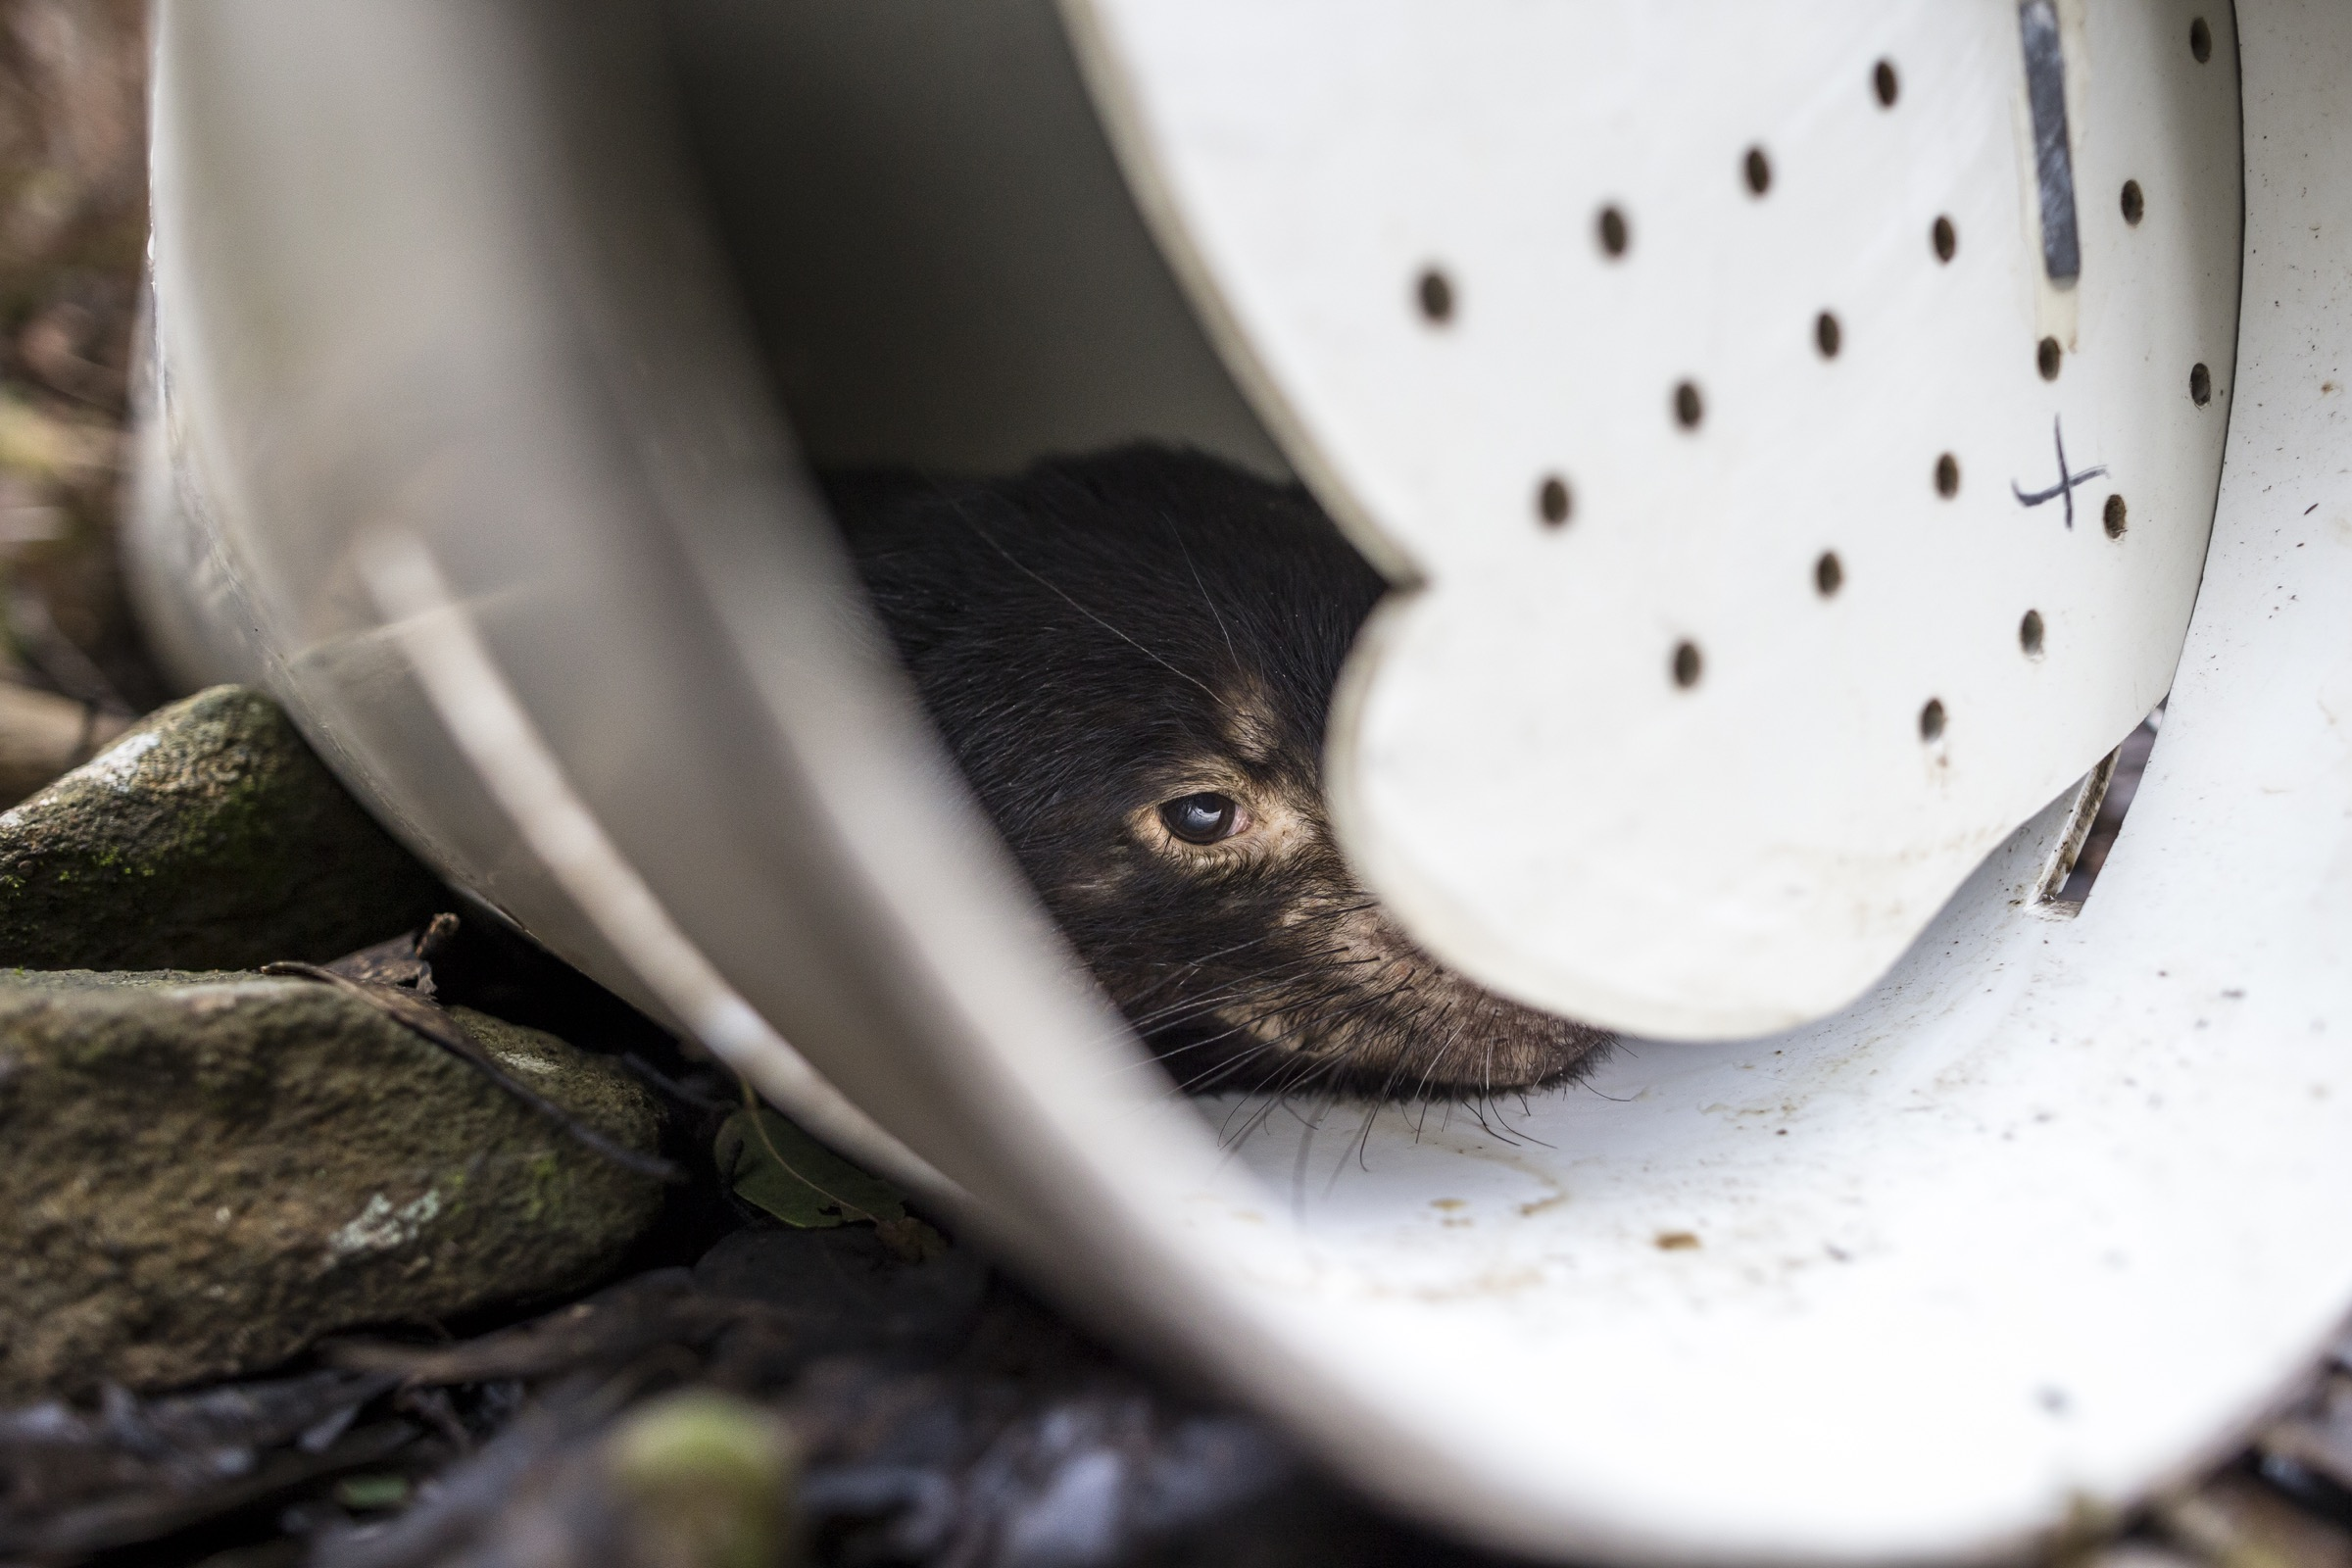 Researchers bait traps with lamb to lure scavenging Tasmanian devils as they forage at night. With each devil they catch, the scientists take measurements, blood and tissues samples, and photographs before releasing the animal back into the wild.